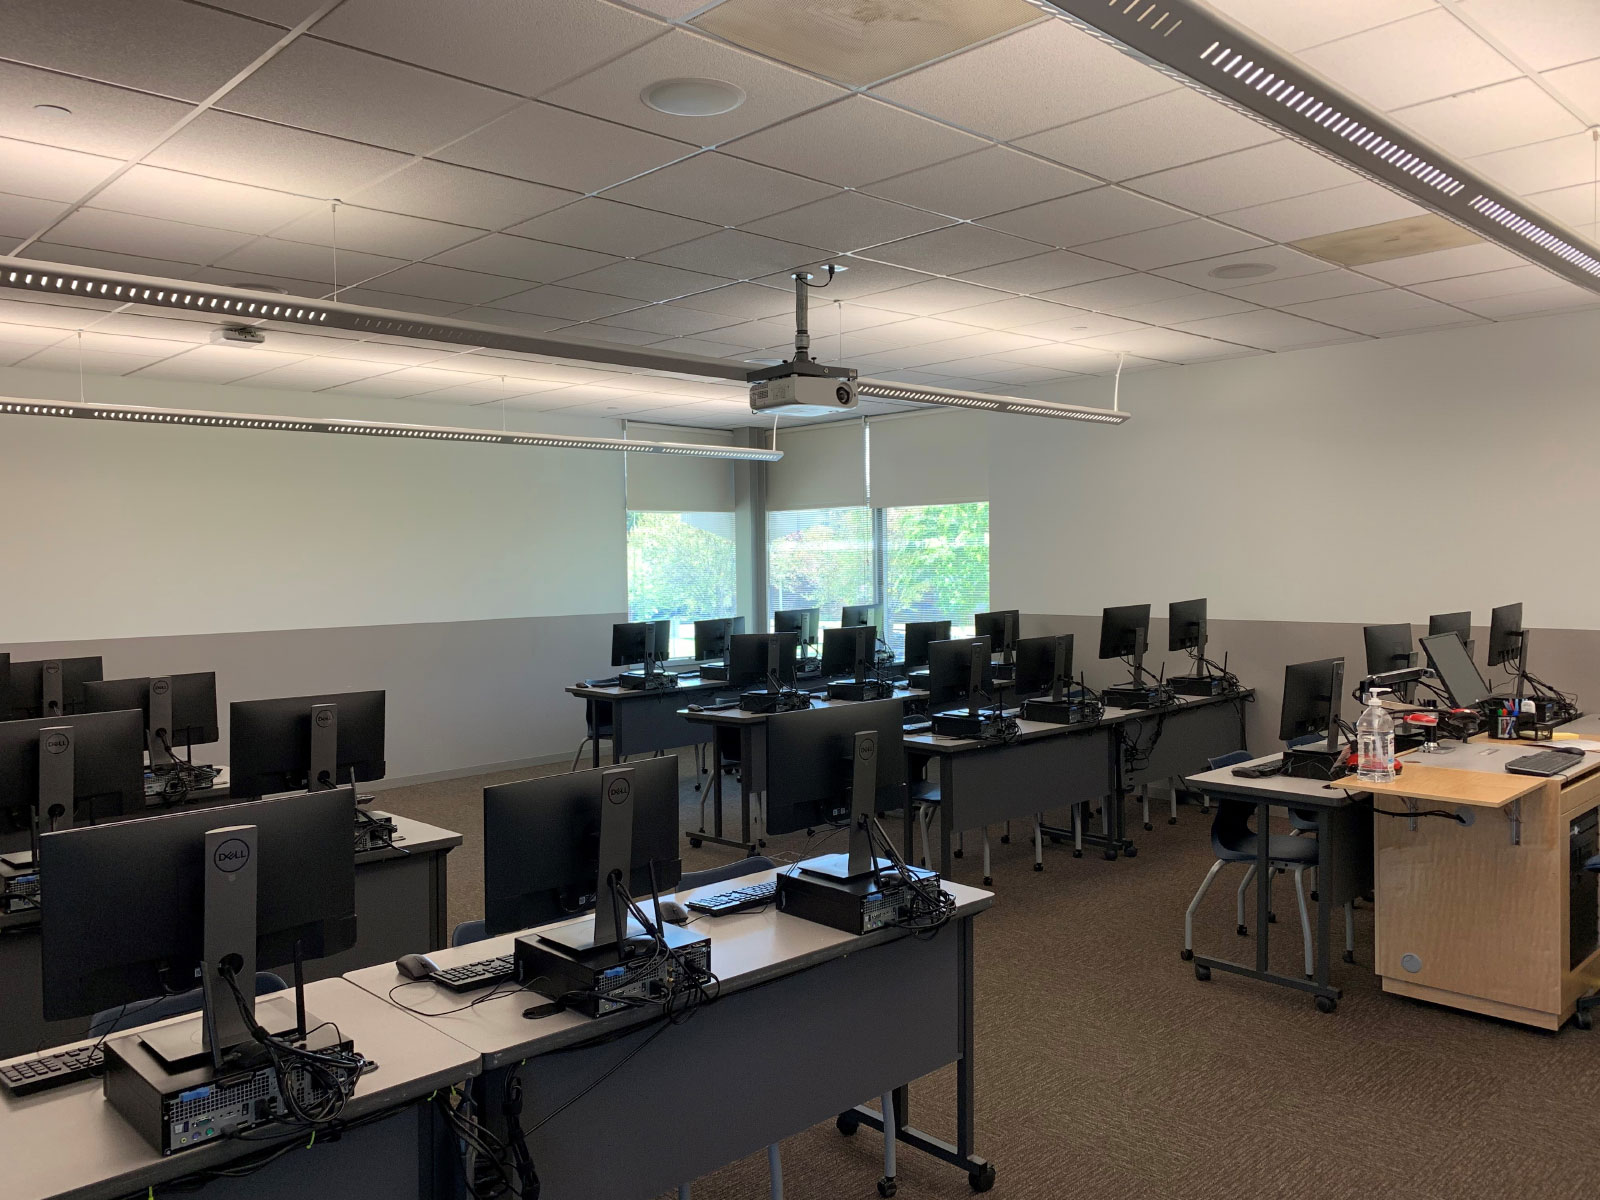 Angled reverse view of rows of computers on desks in Wilsonville's computer lab